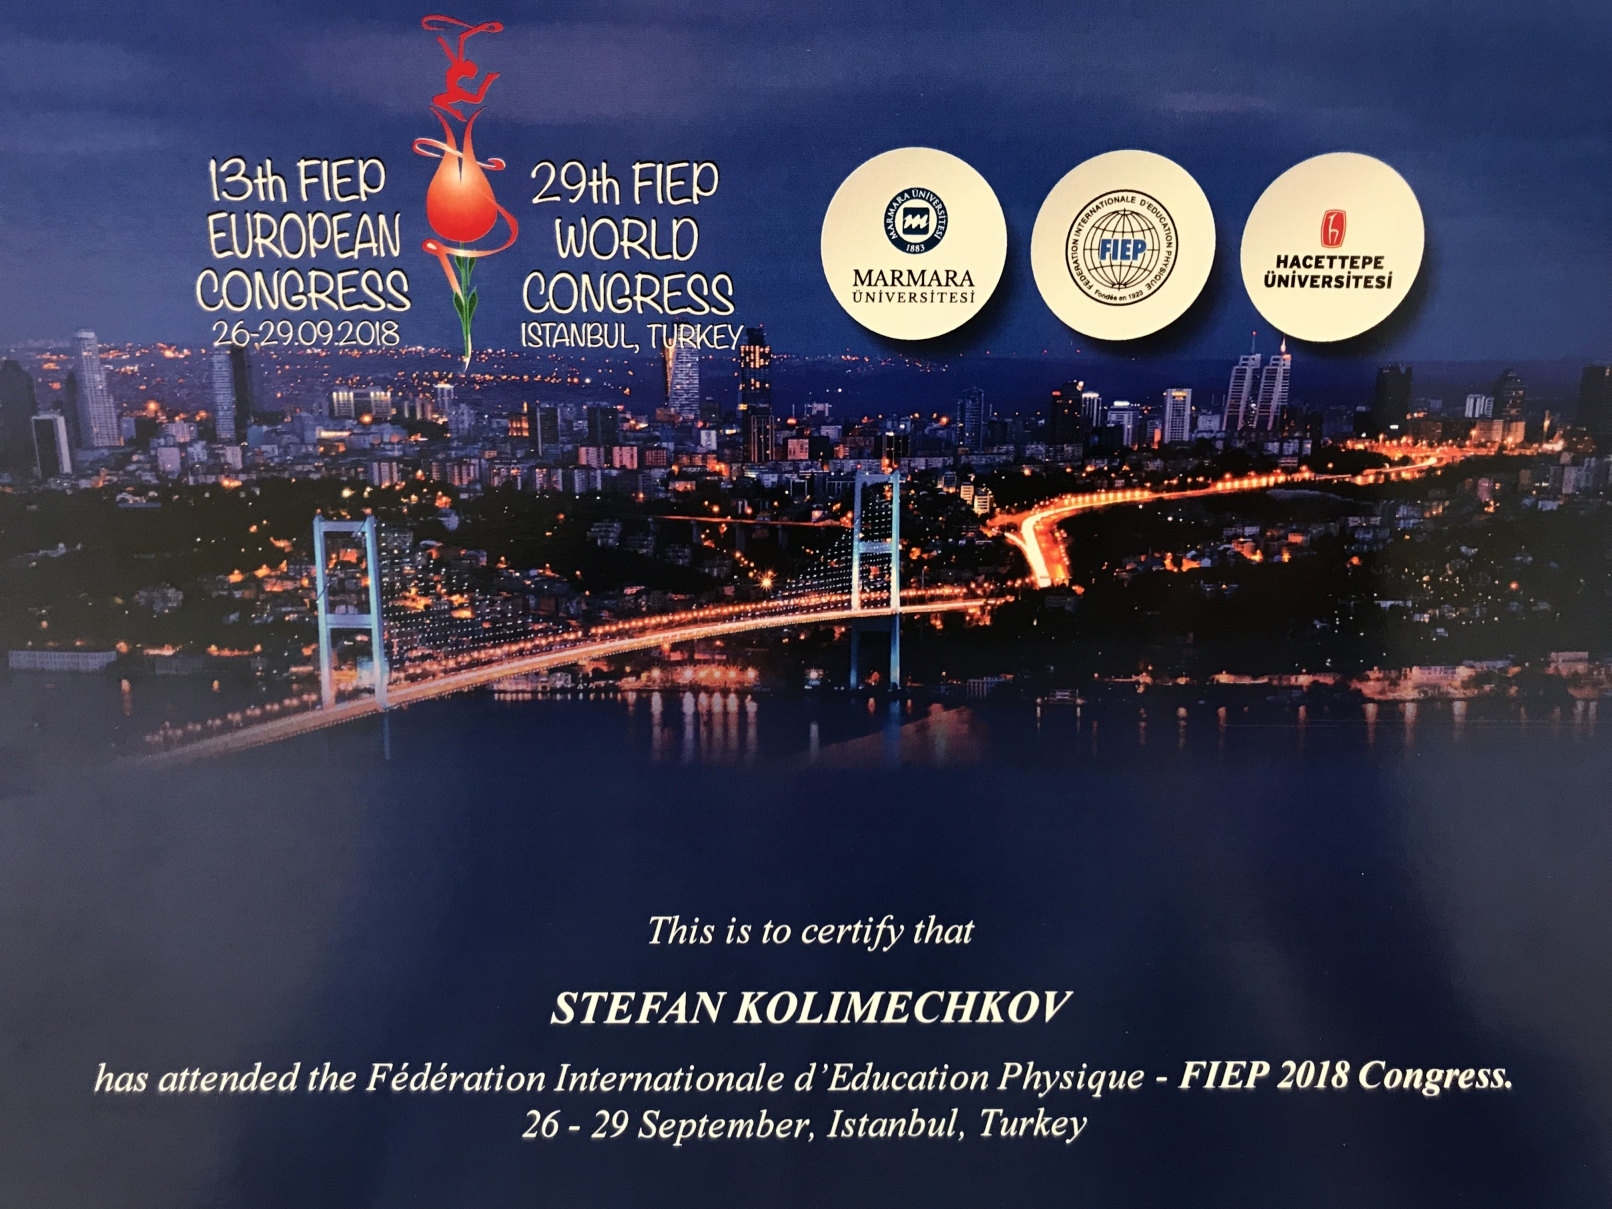 Dr Kolimechkov - certificate of participation at the 13th FIEP European Congress